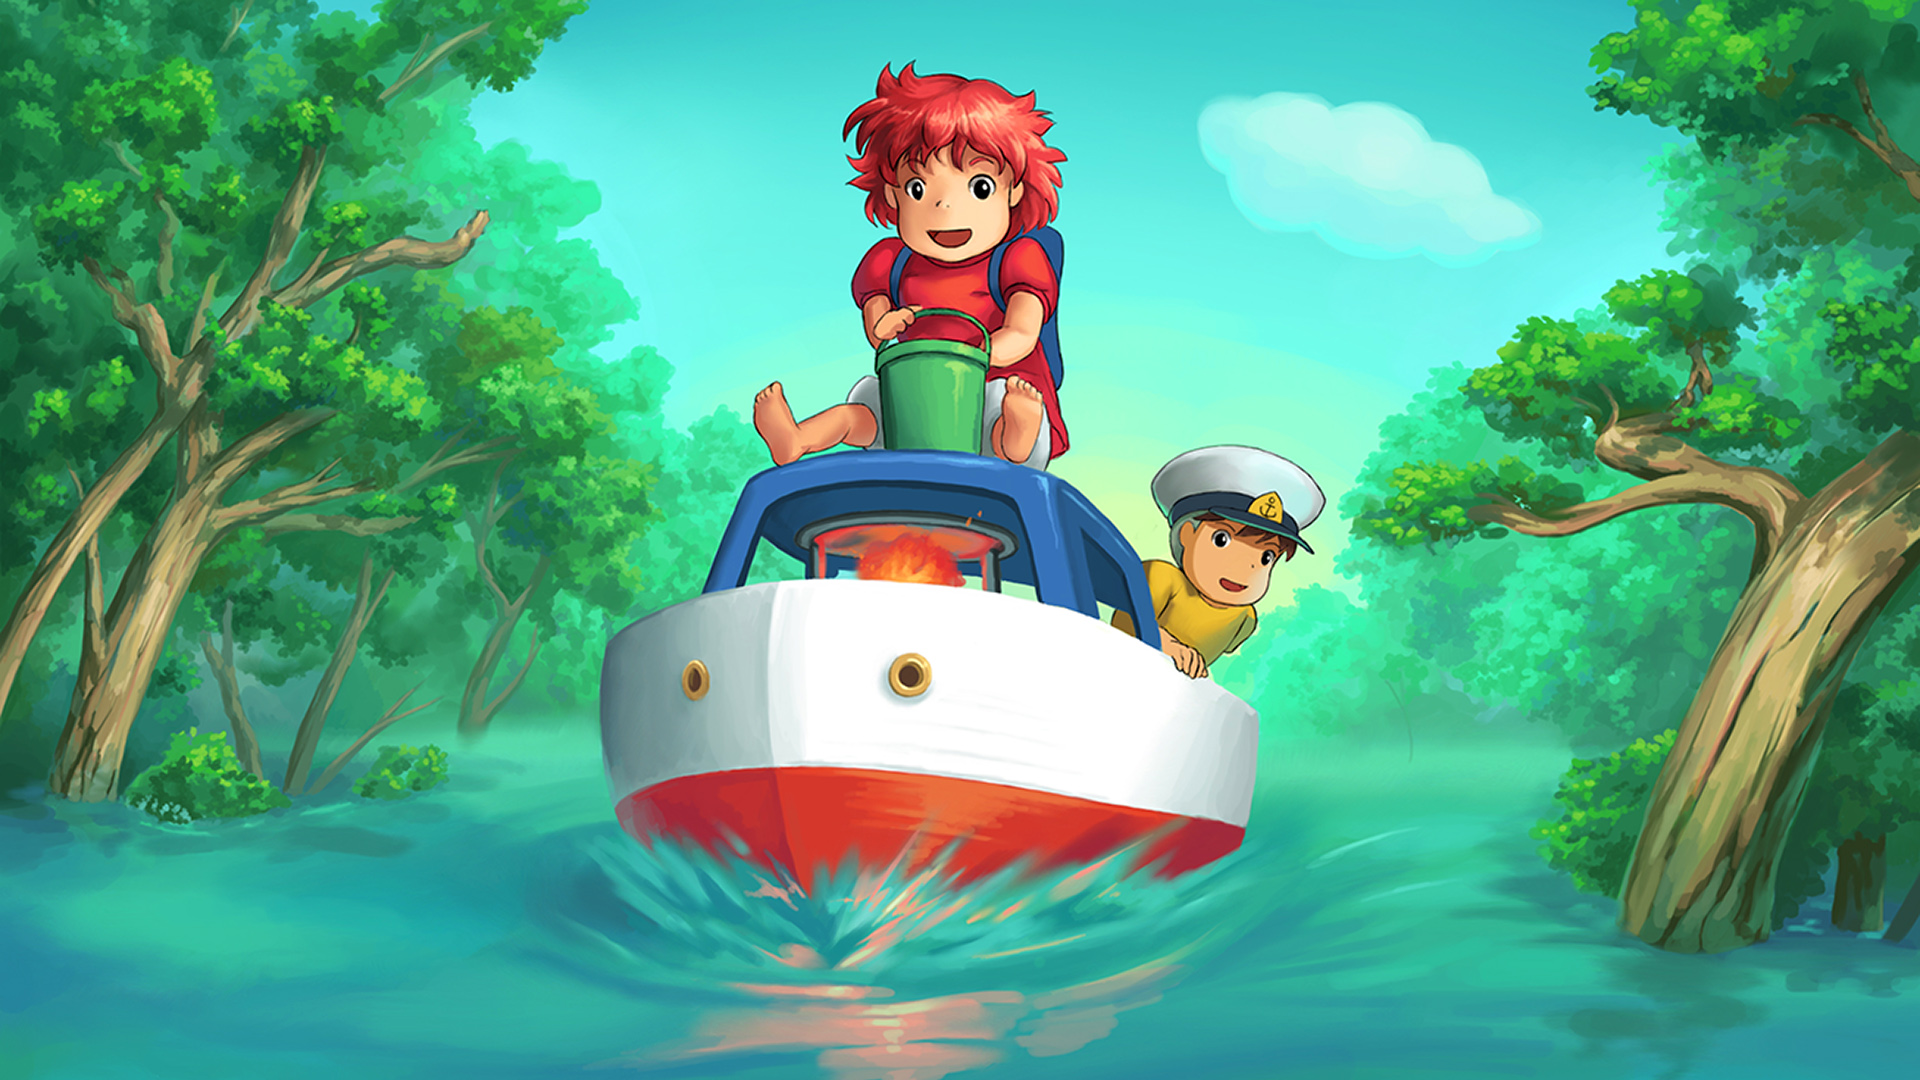 Hd Ghibli Wallpaper 1080: Ponyo Backgrounds, Pictures, Images